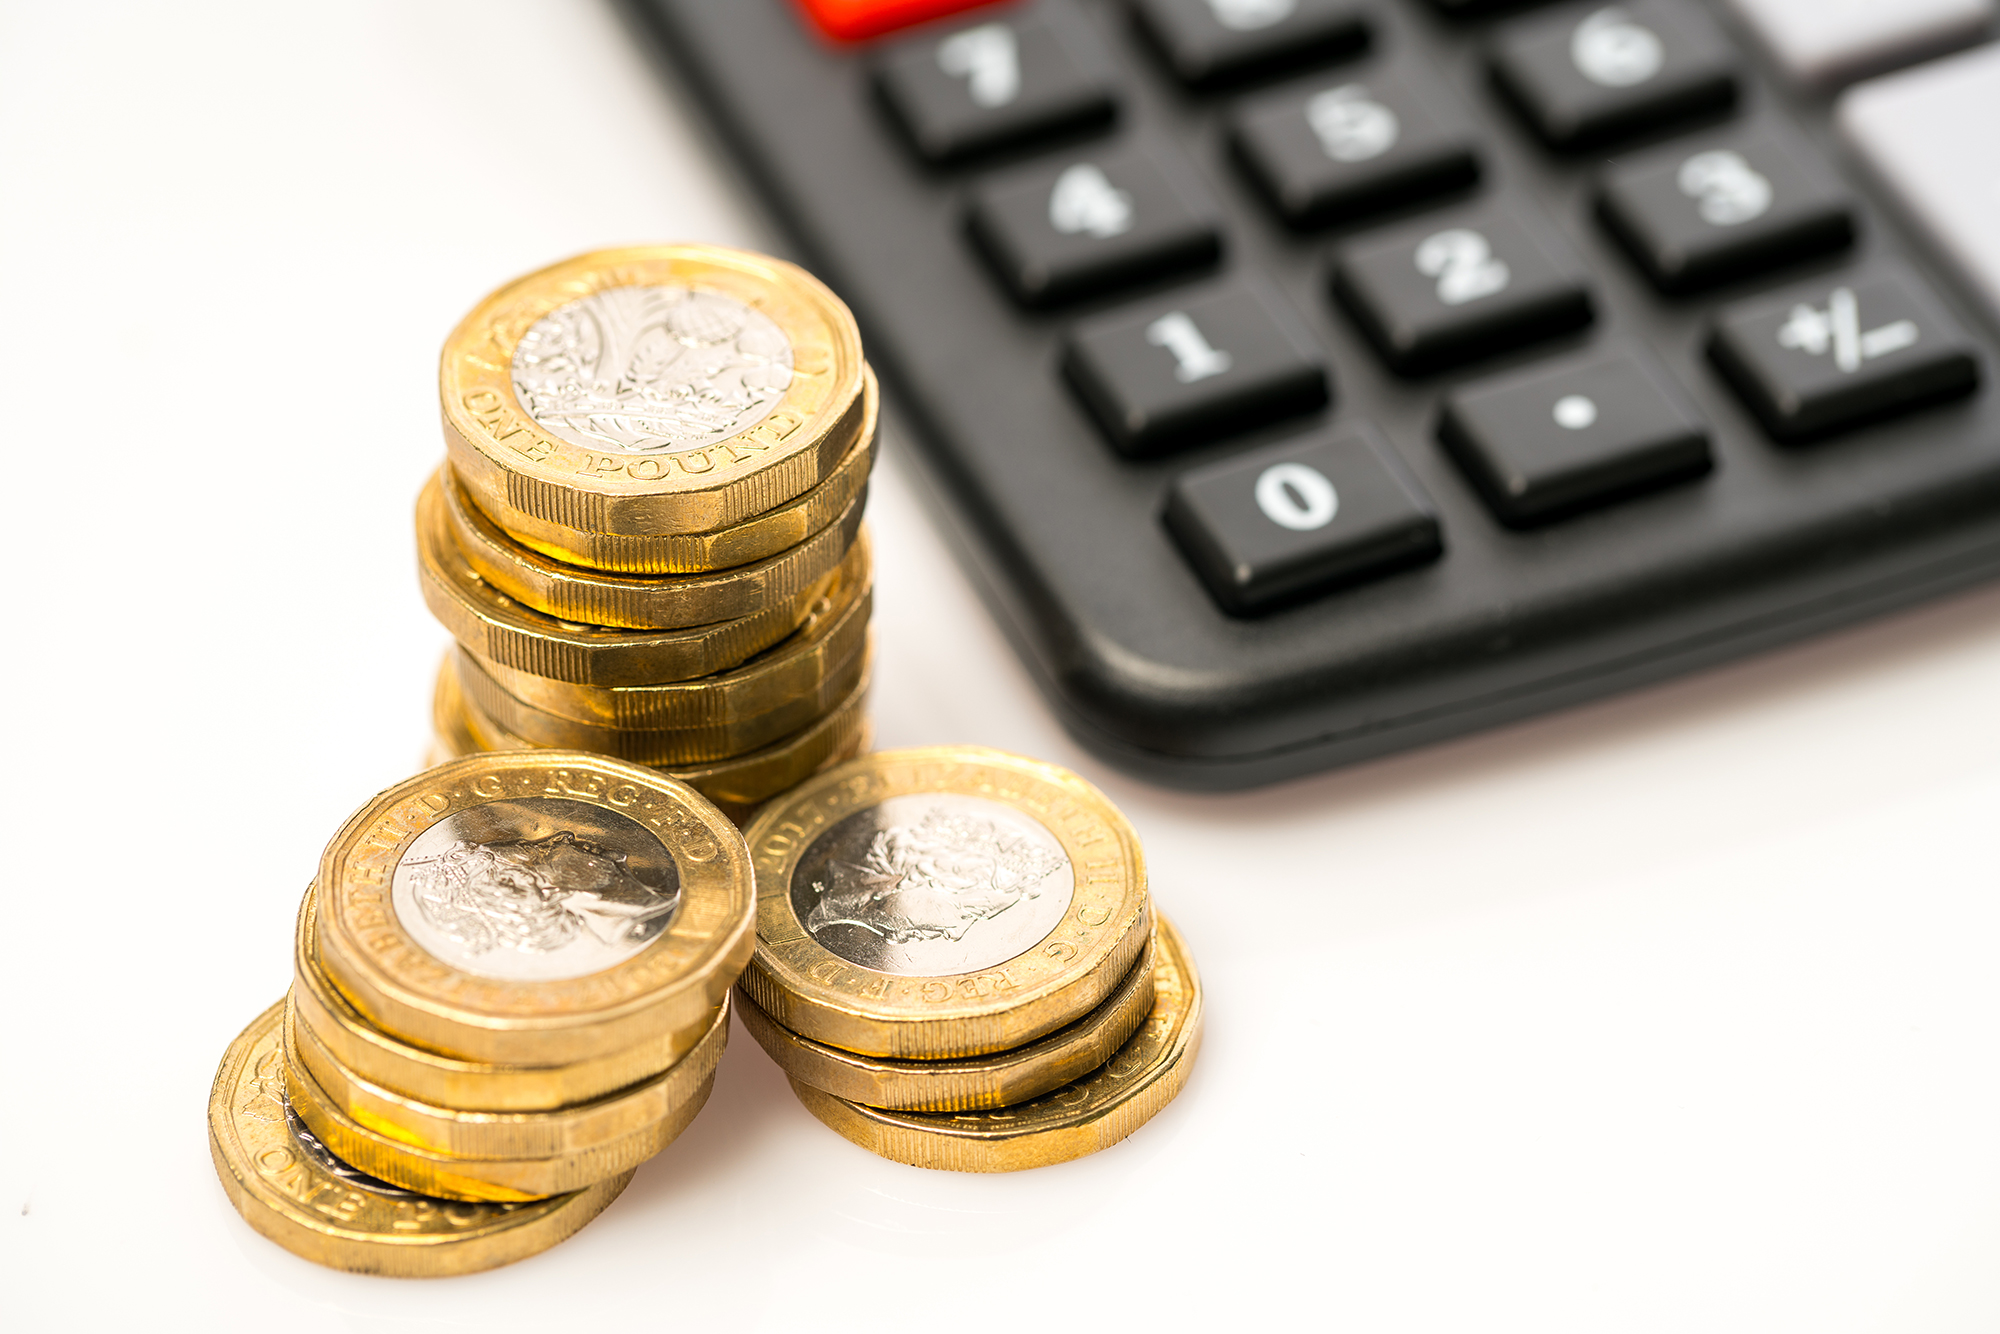 Pension fees. (Image: Shutterstock)